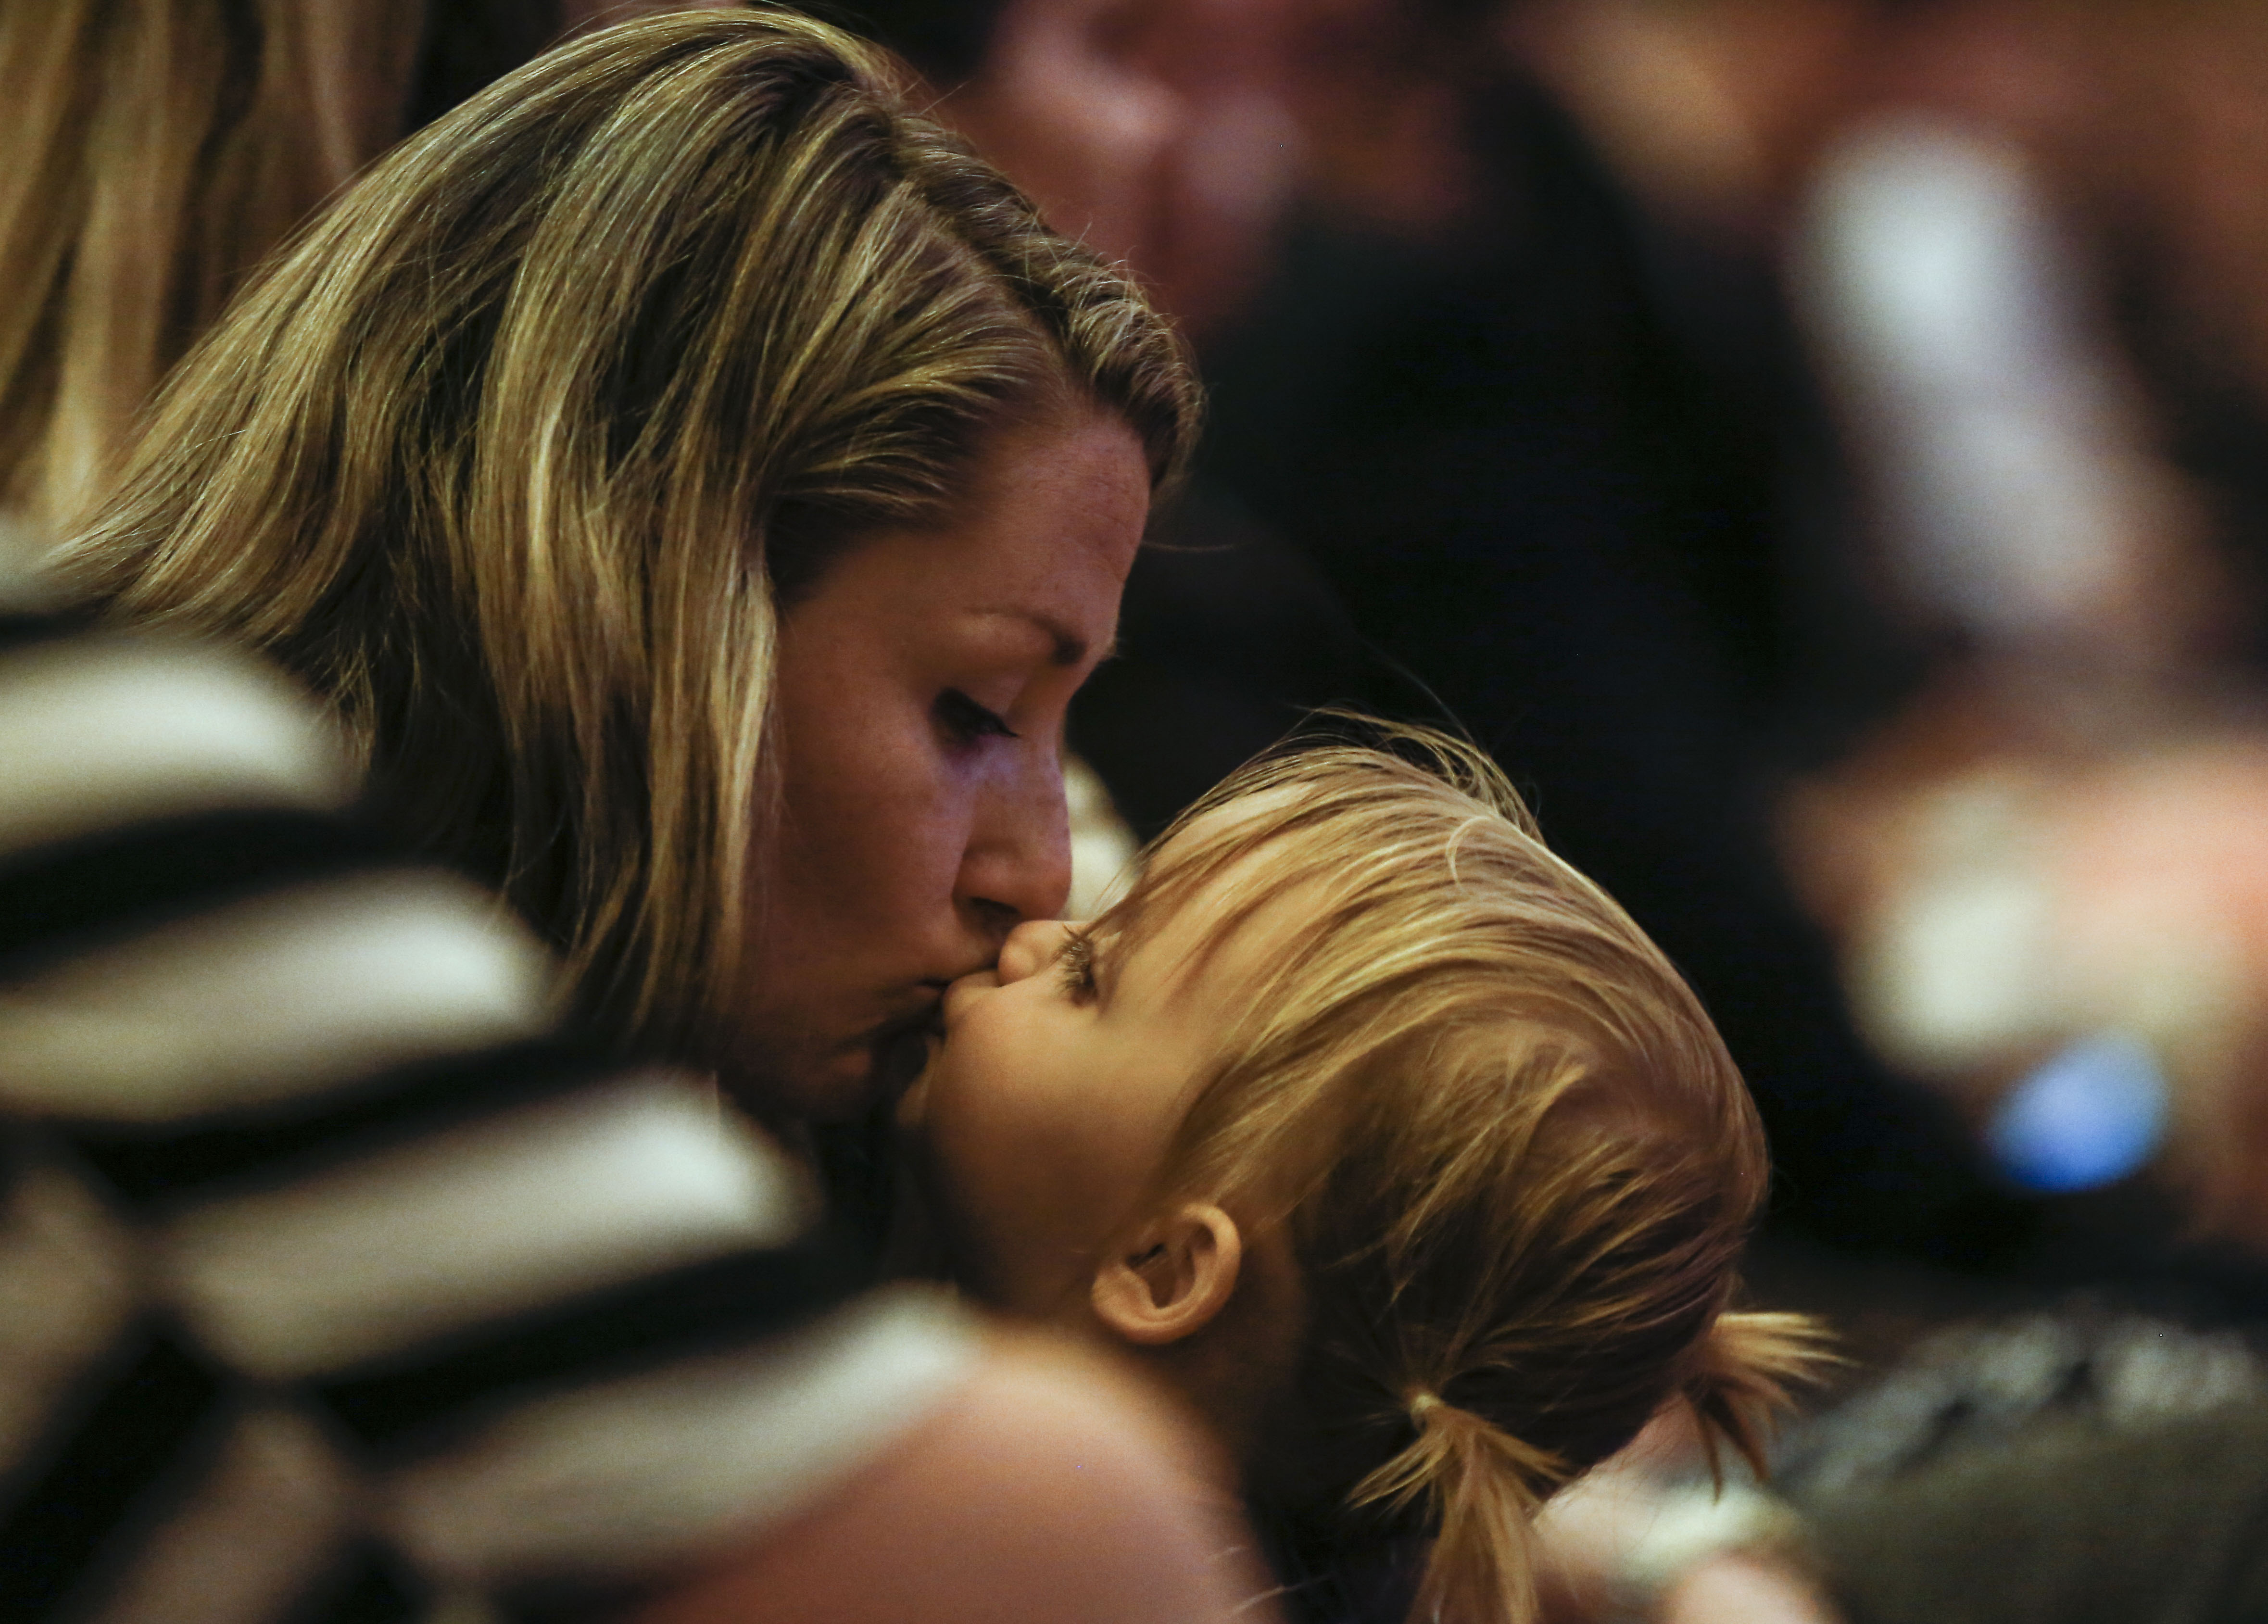 Jessica Chambers gives a kiss to her daughter Maggie, 1, during the Worldwide Devotional for Young Adults at the Salt Lake Tabernacle in Salt Lake City on Sunday, May 5, 2019.